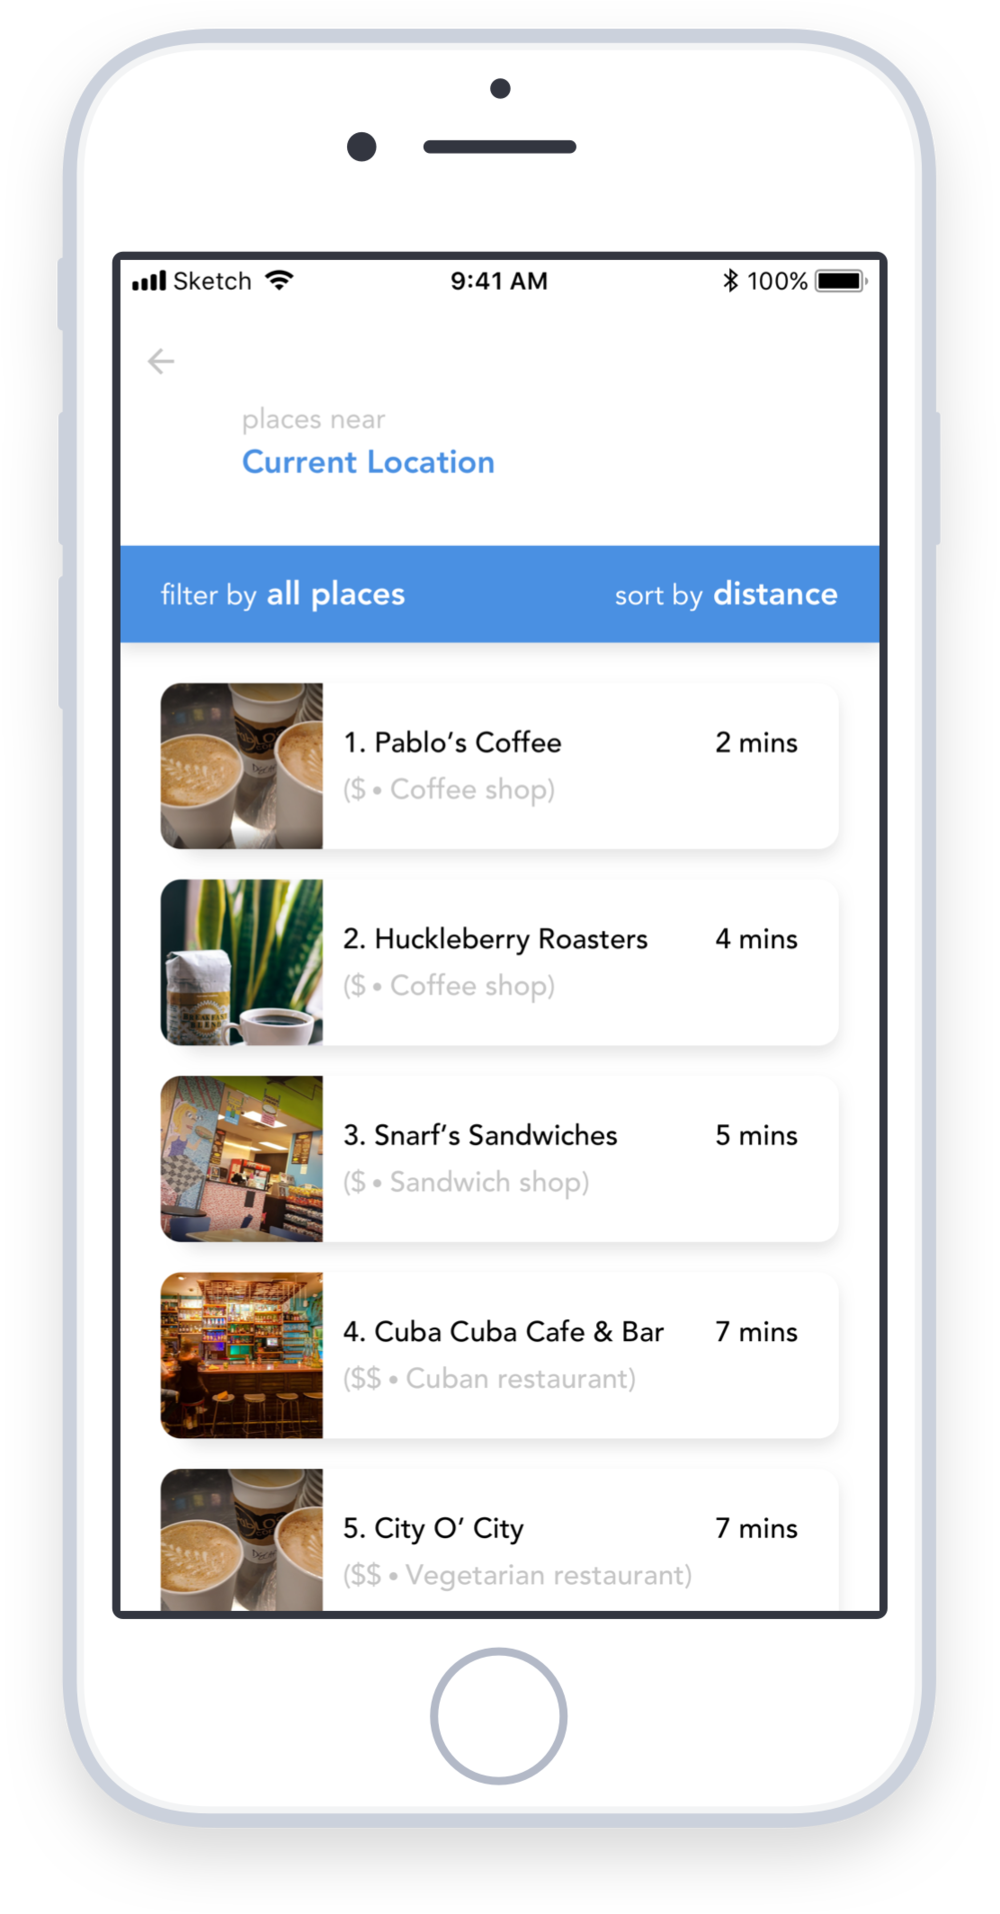 Nearby places help users make the most of unexpected delays - Nobody loves when their journey is delayed—but it happens. With RTD Beacon, people don't have to spend their extra time waiting in crowded transportation hubs. RTD Beacon helps users find nearby points of interests to stop along their way. Now, an 18 minute delay could turn into an enjoyable cup of coffee along the way!